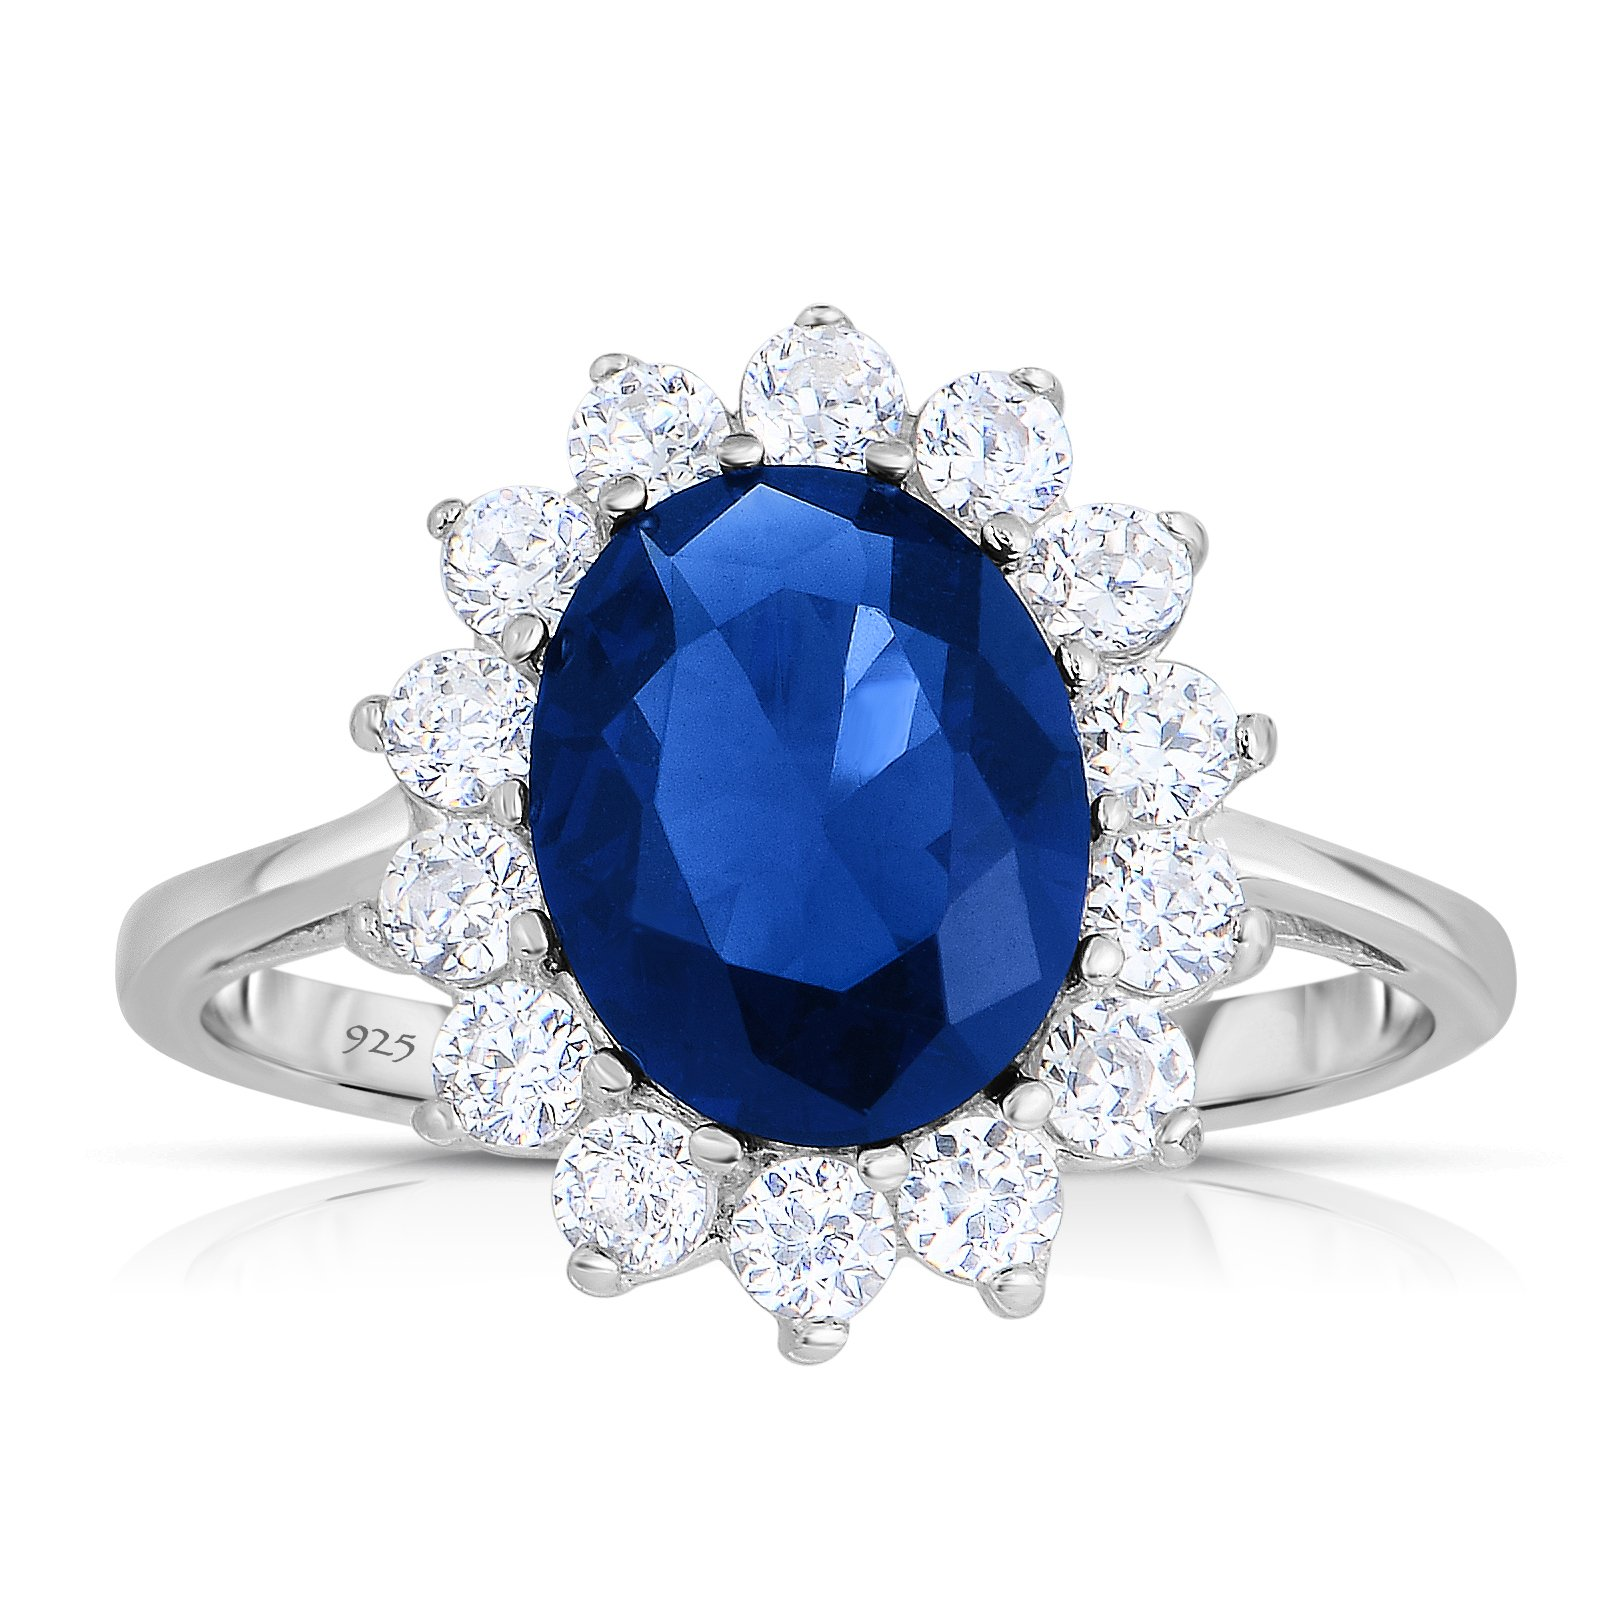 Sterling Silver Kashmir Blue Sapphire CZ with White CZ Helo Jacket Princess Diana Kate Middleton Engagement Ring - Size 8